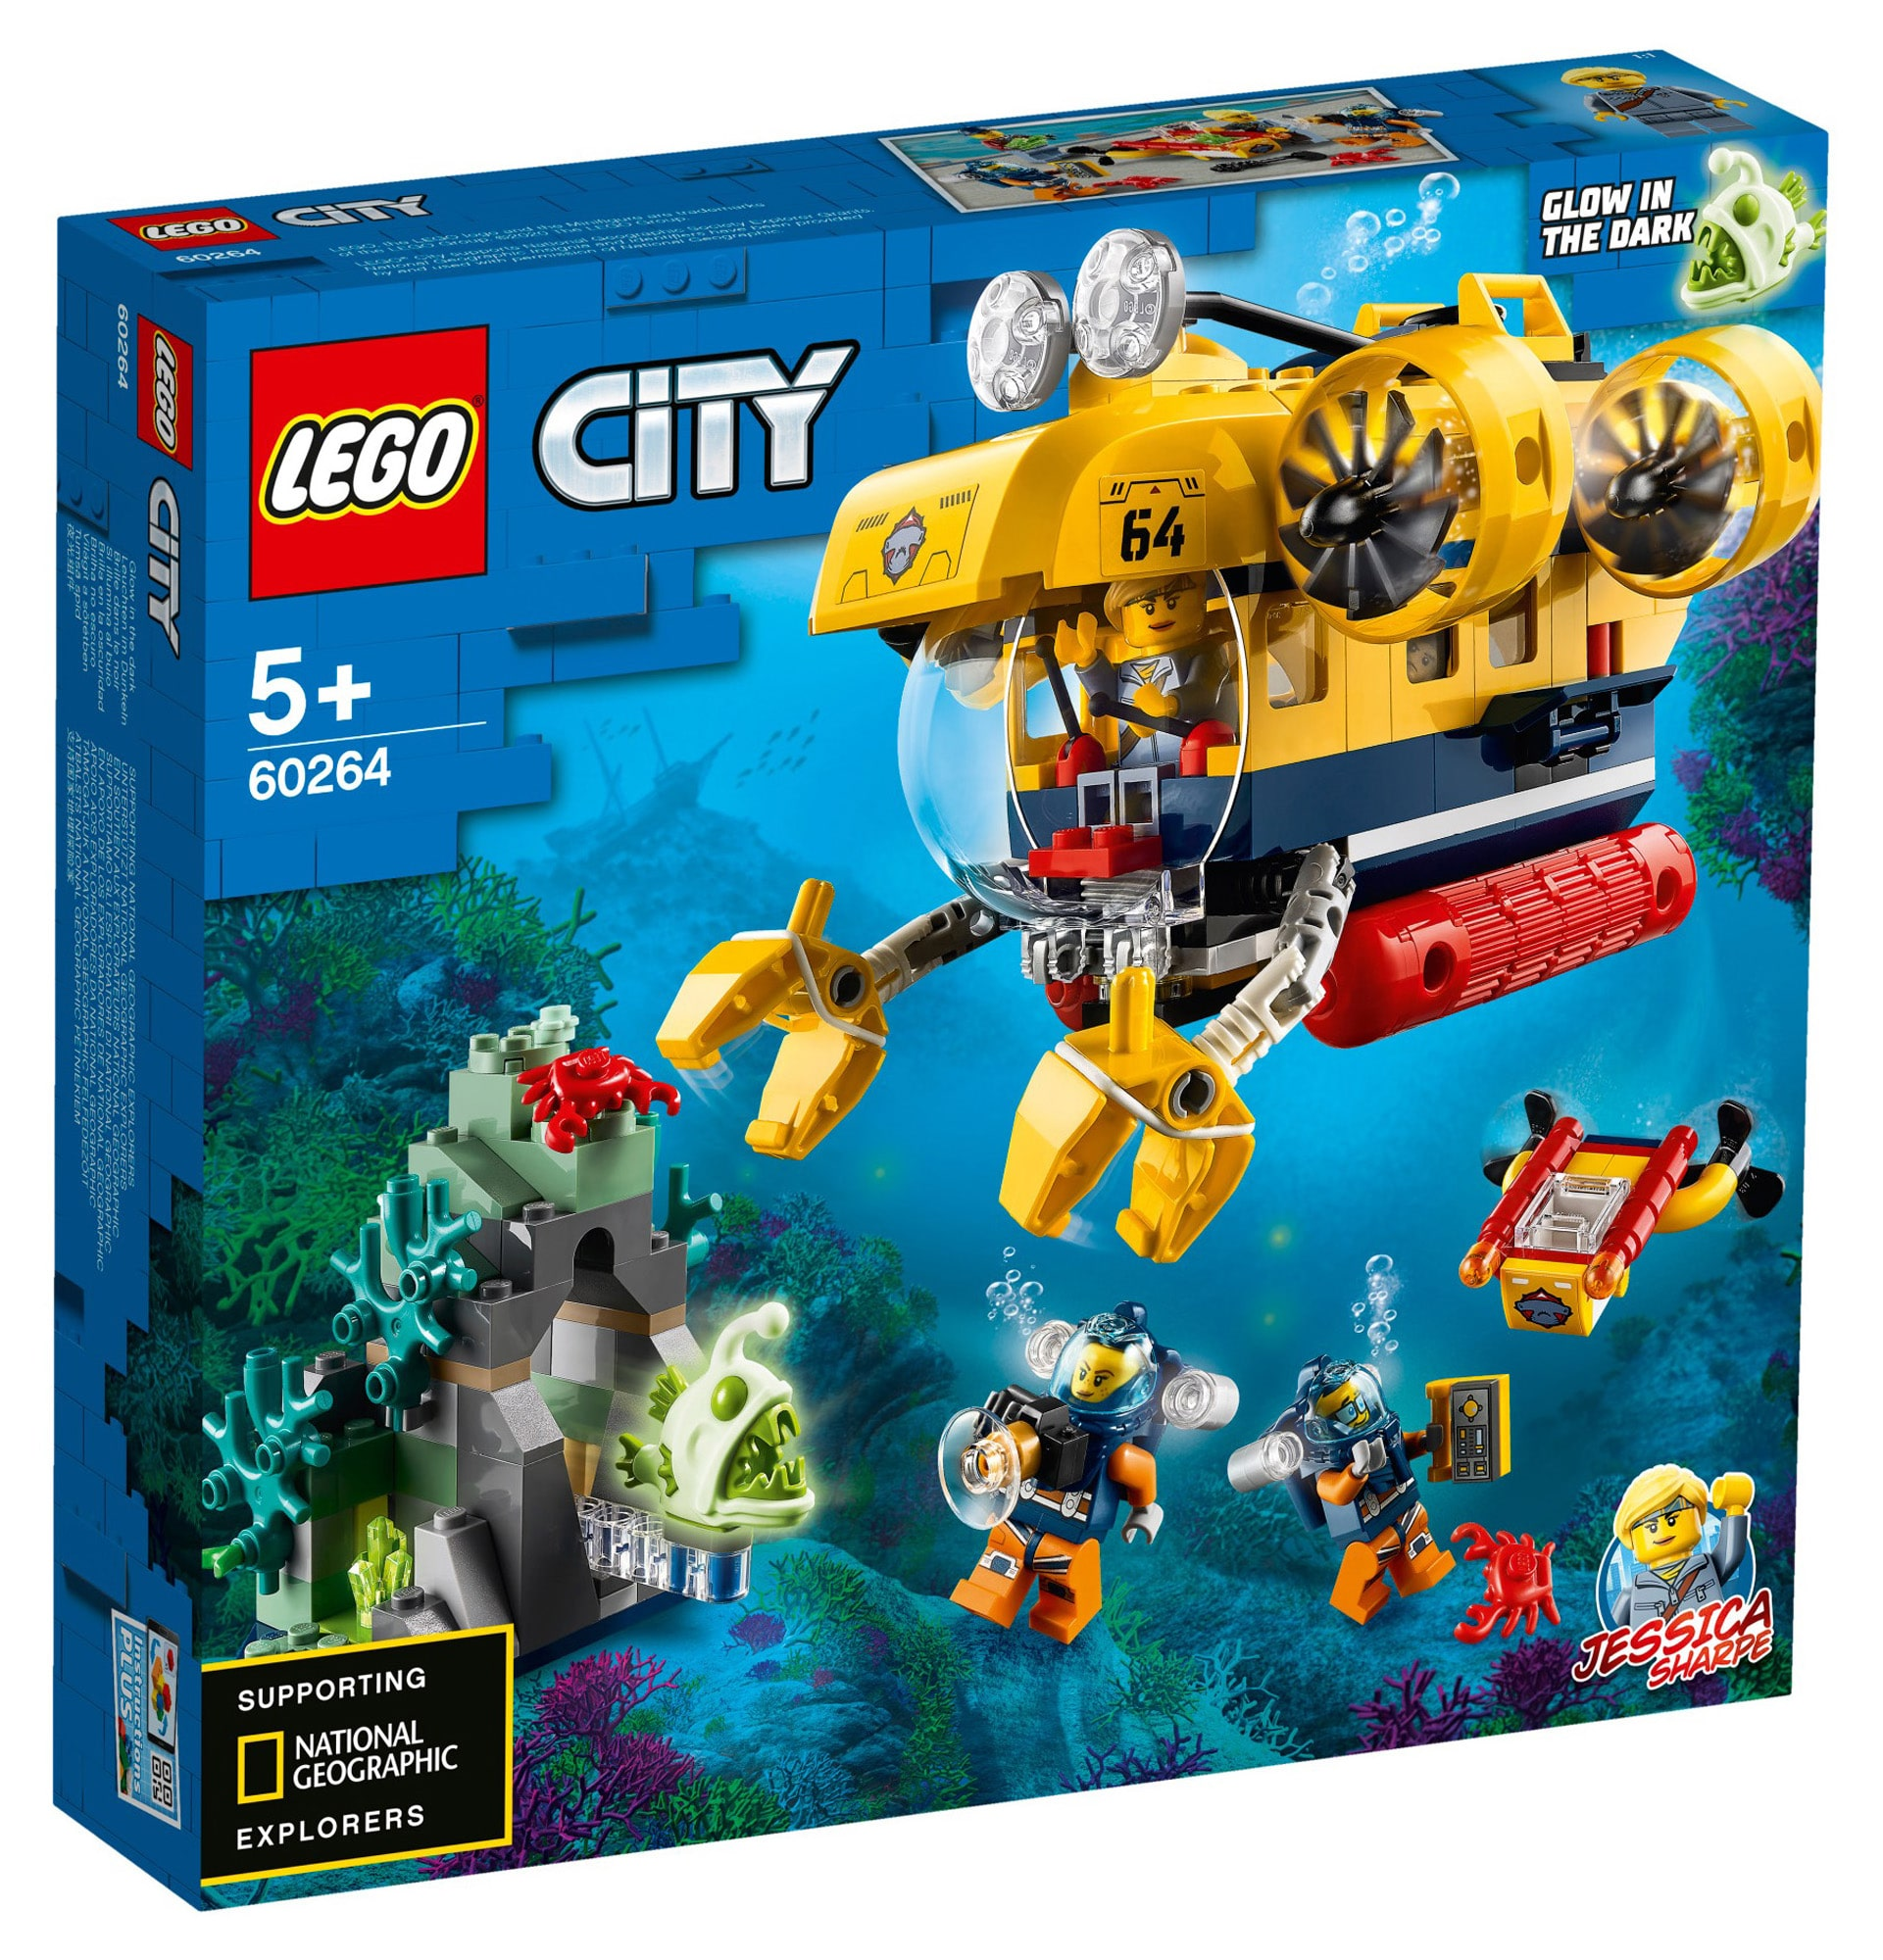 LEGO City 60264 Ocean Exploration Submarine 9